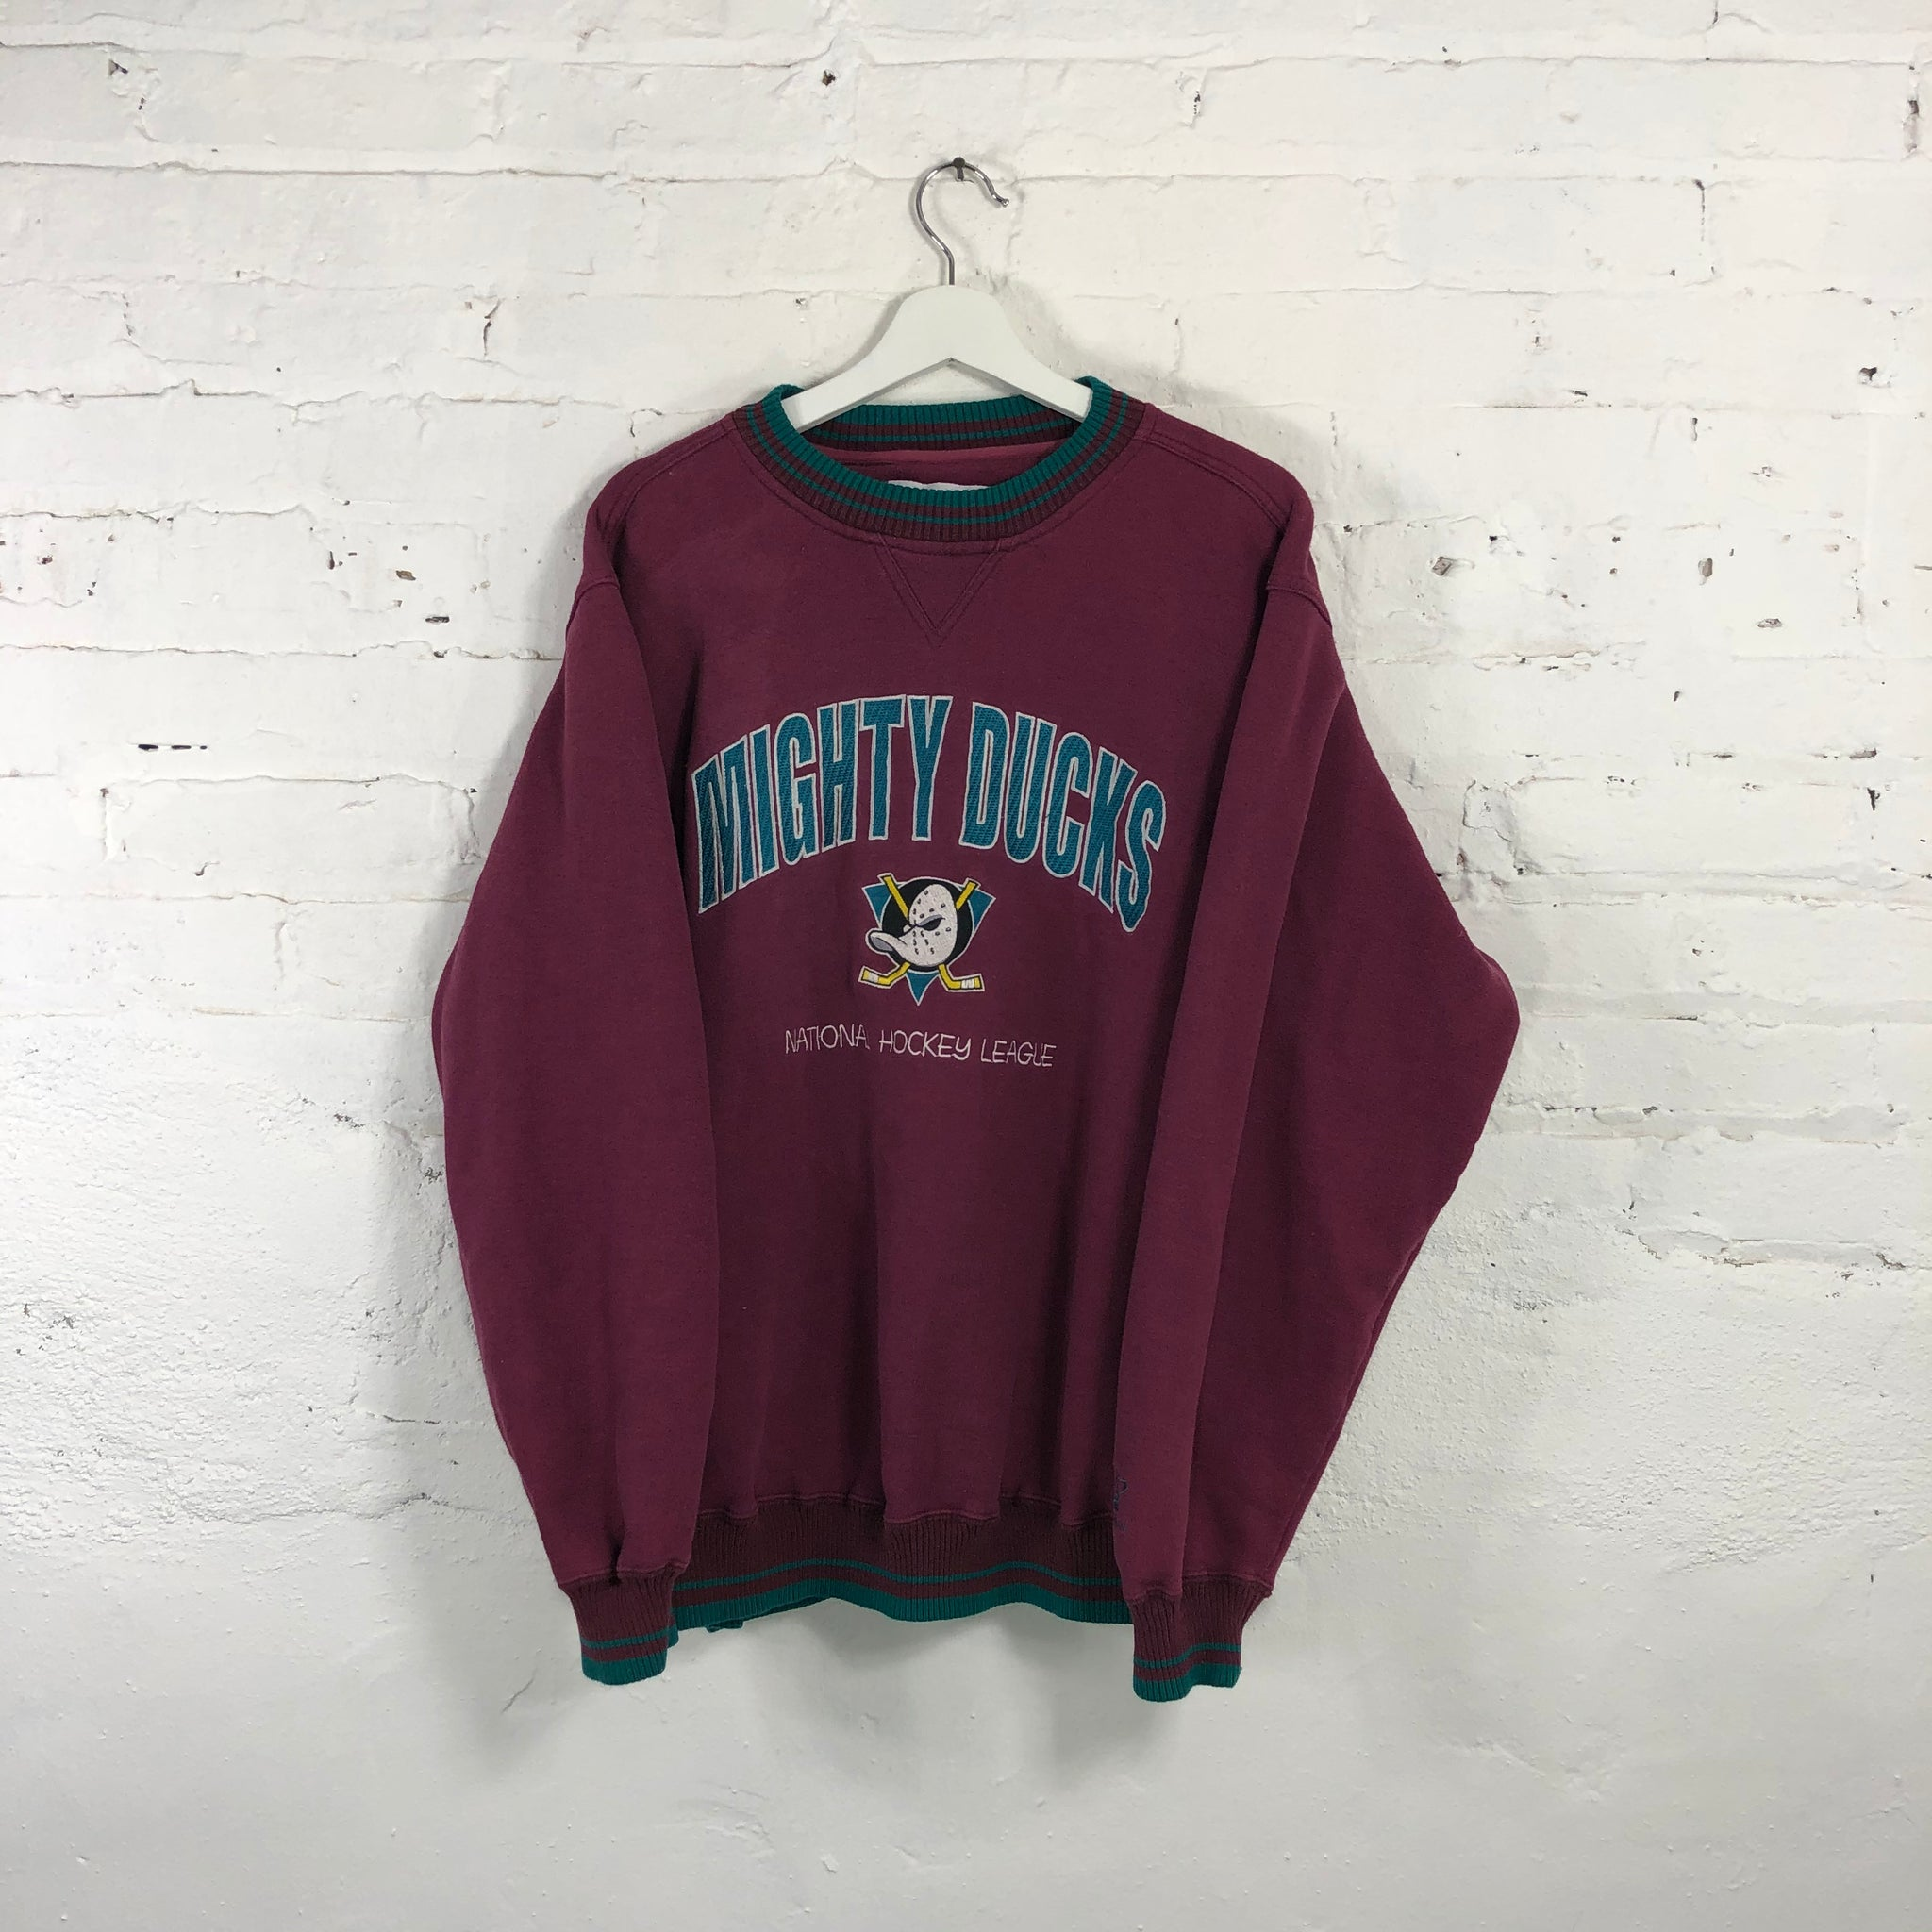 Mighty Ducks Crewneck Sweatshirt Logo Athletic